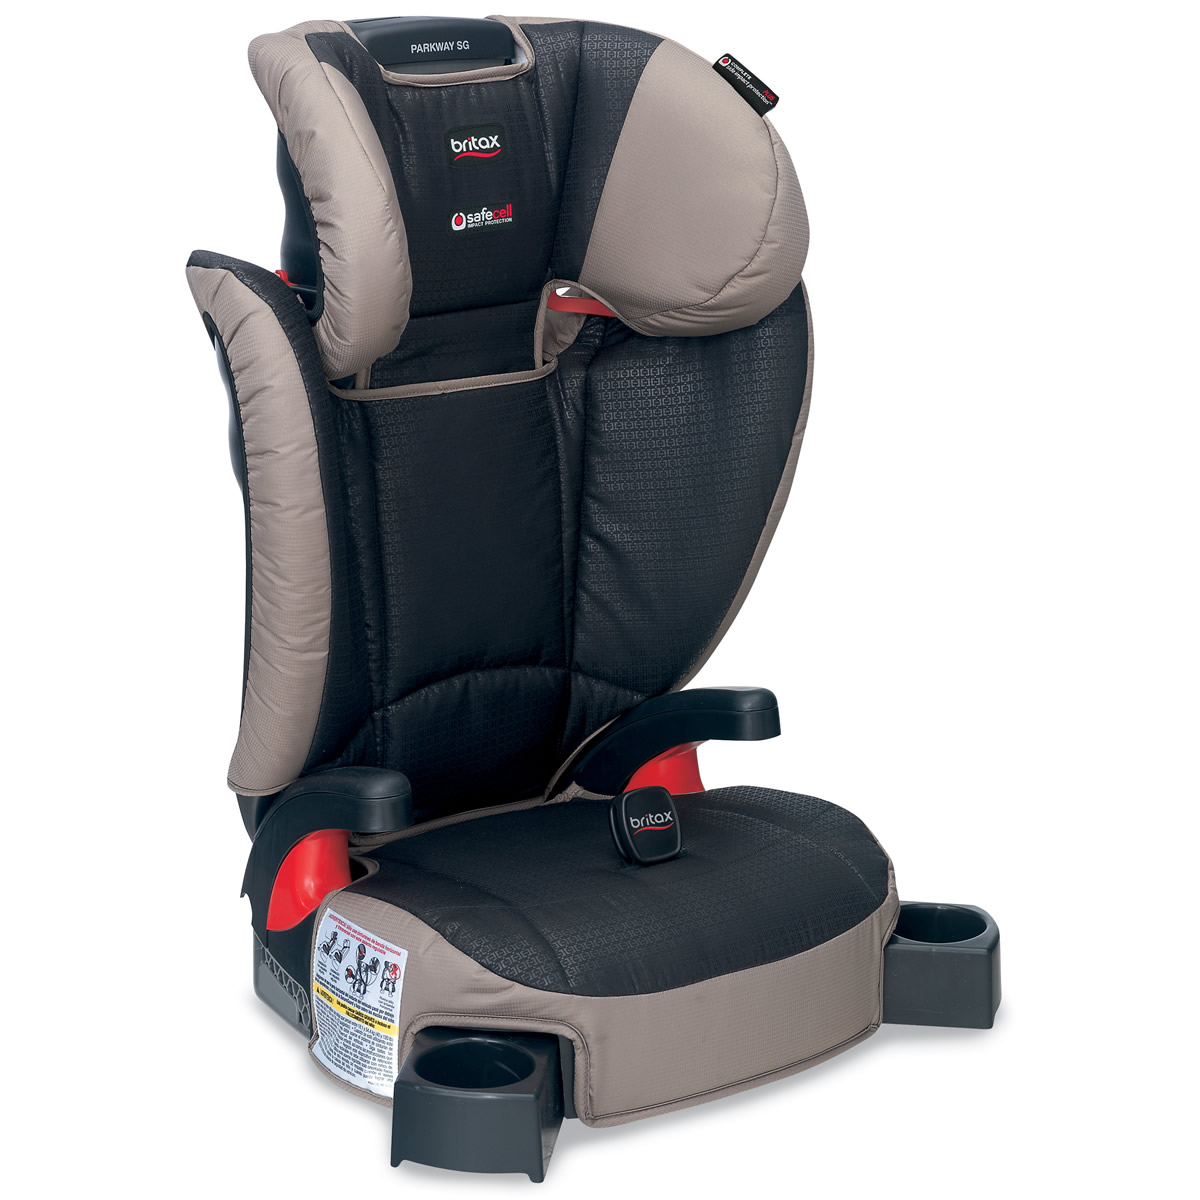 Britax Parkway Sg G1 1 Belt Positioning Booster Car Seat